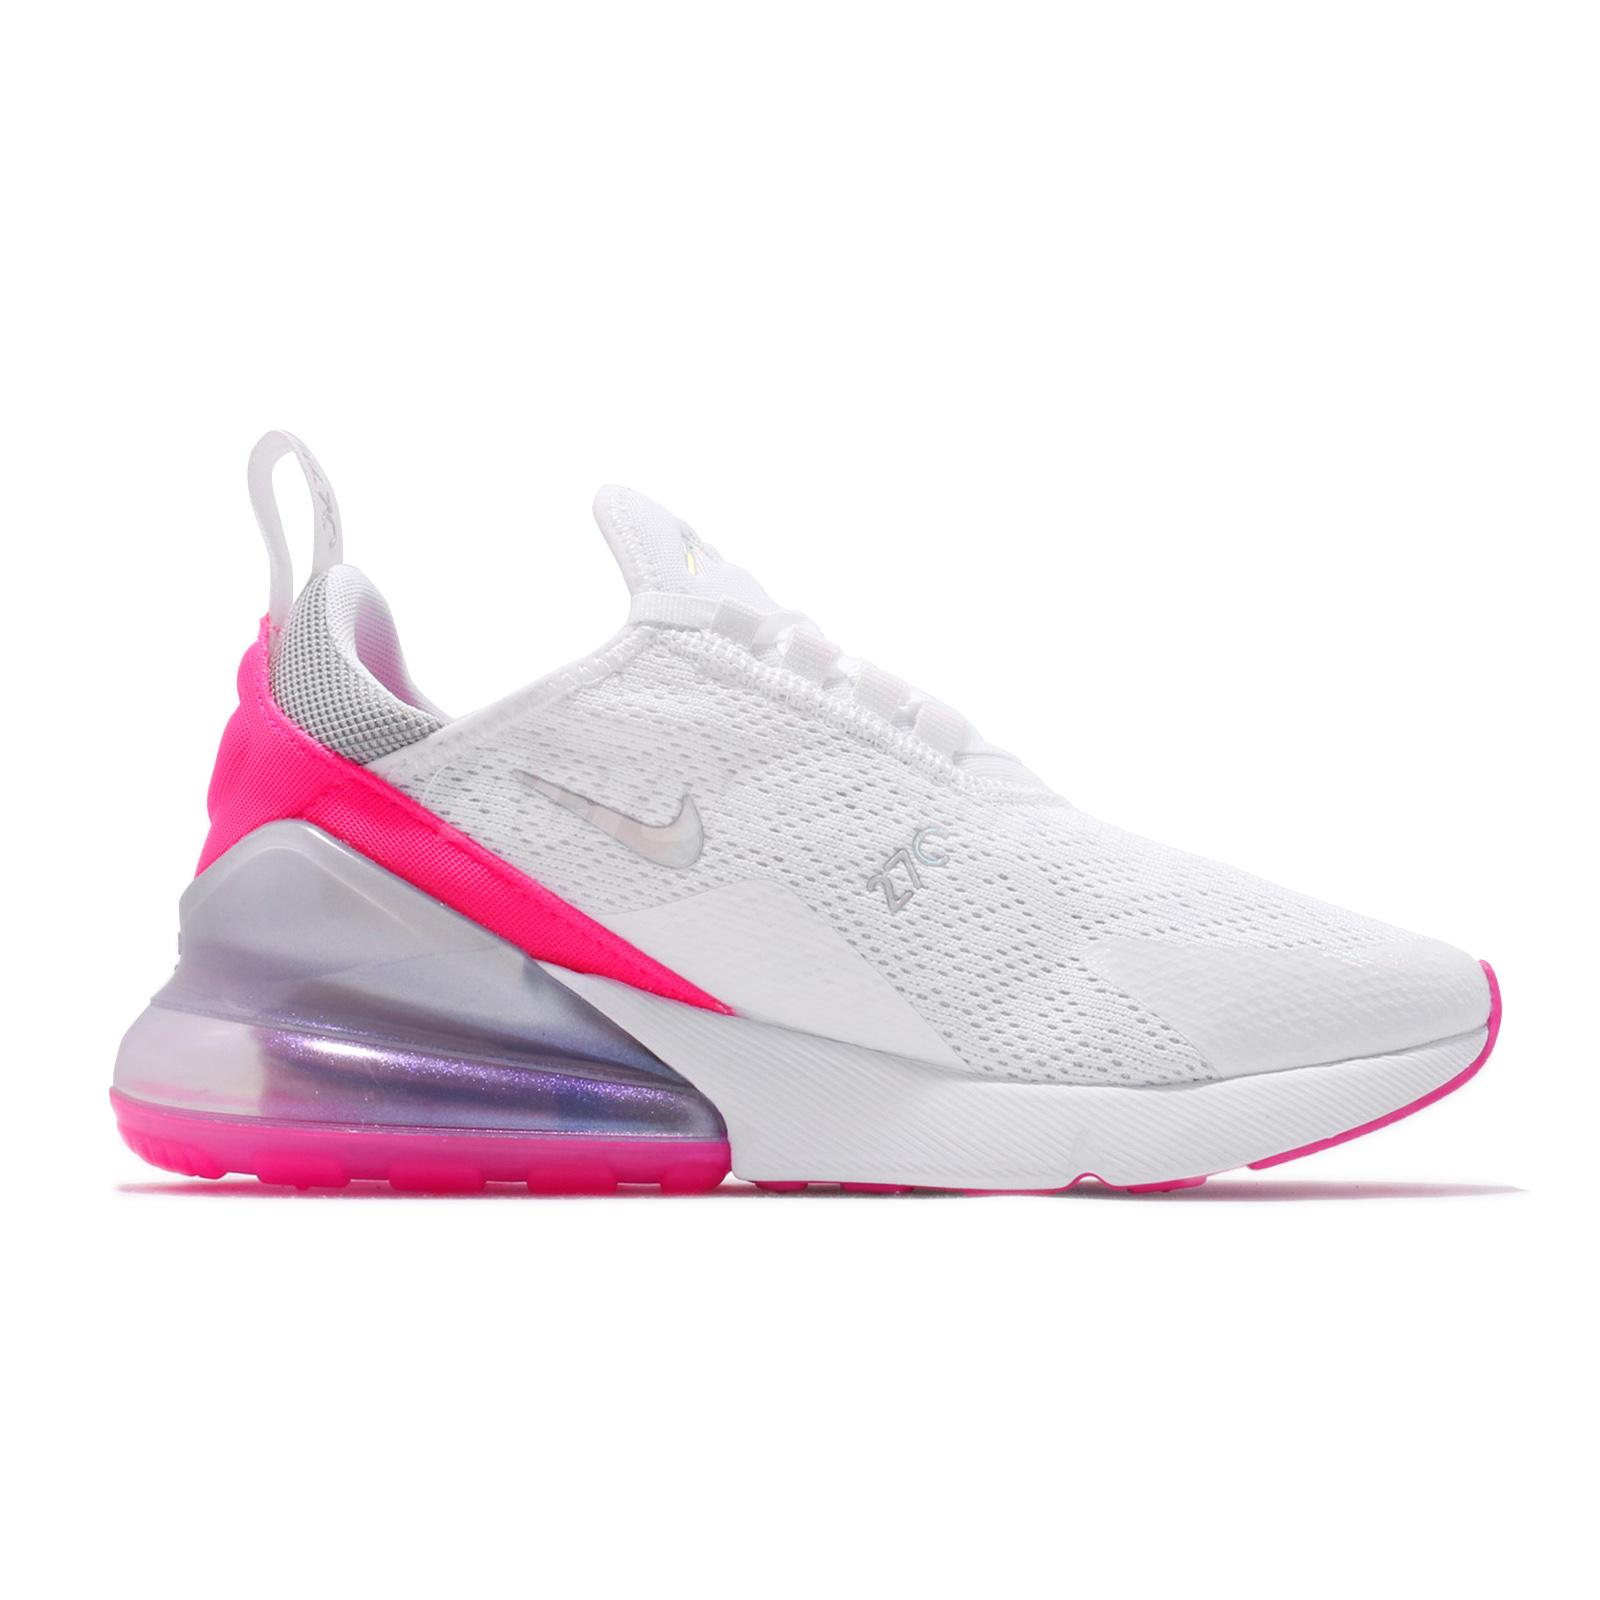 Nike Air Max 270 WMNS White Pink Silver Running Shoes CI1963 191 Sale